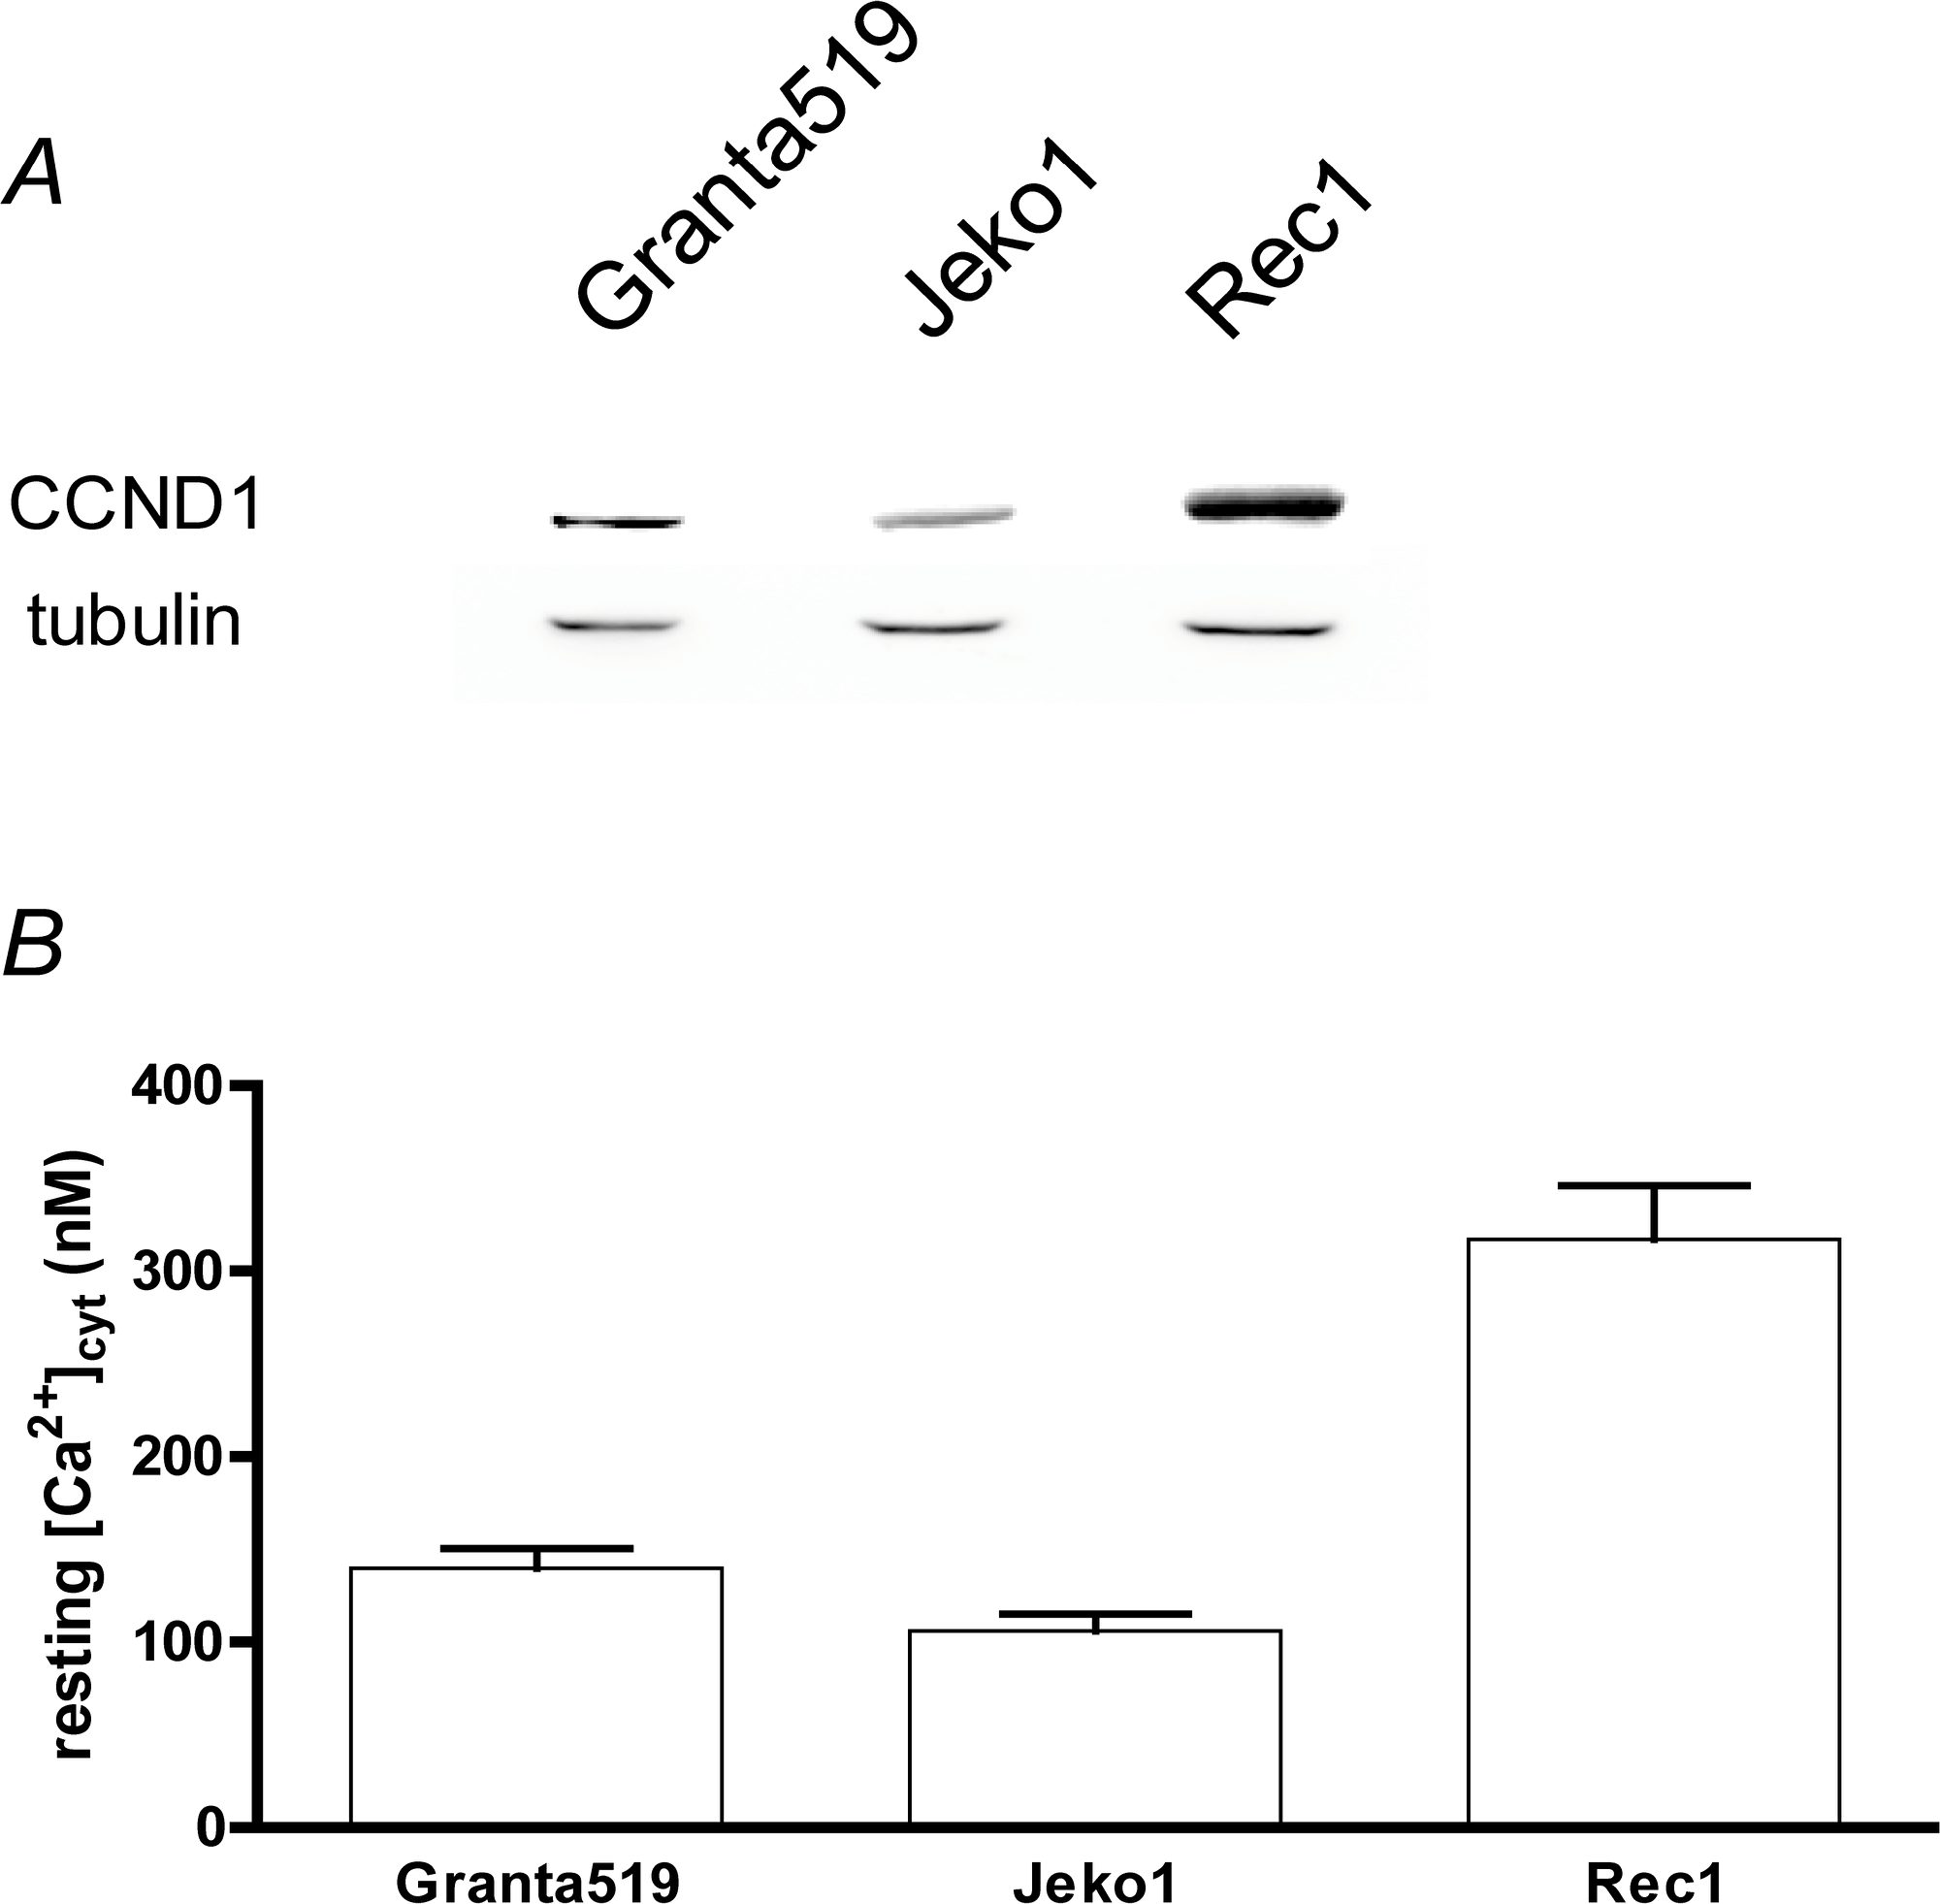 MCL cell lines express Cyclin D1 and can show an increased resting [Ca2+]cyt.